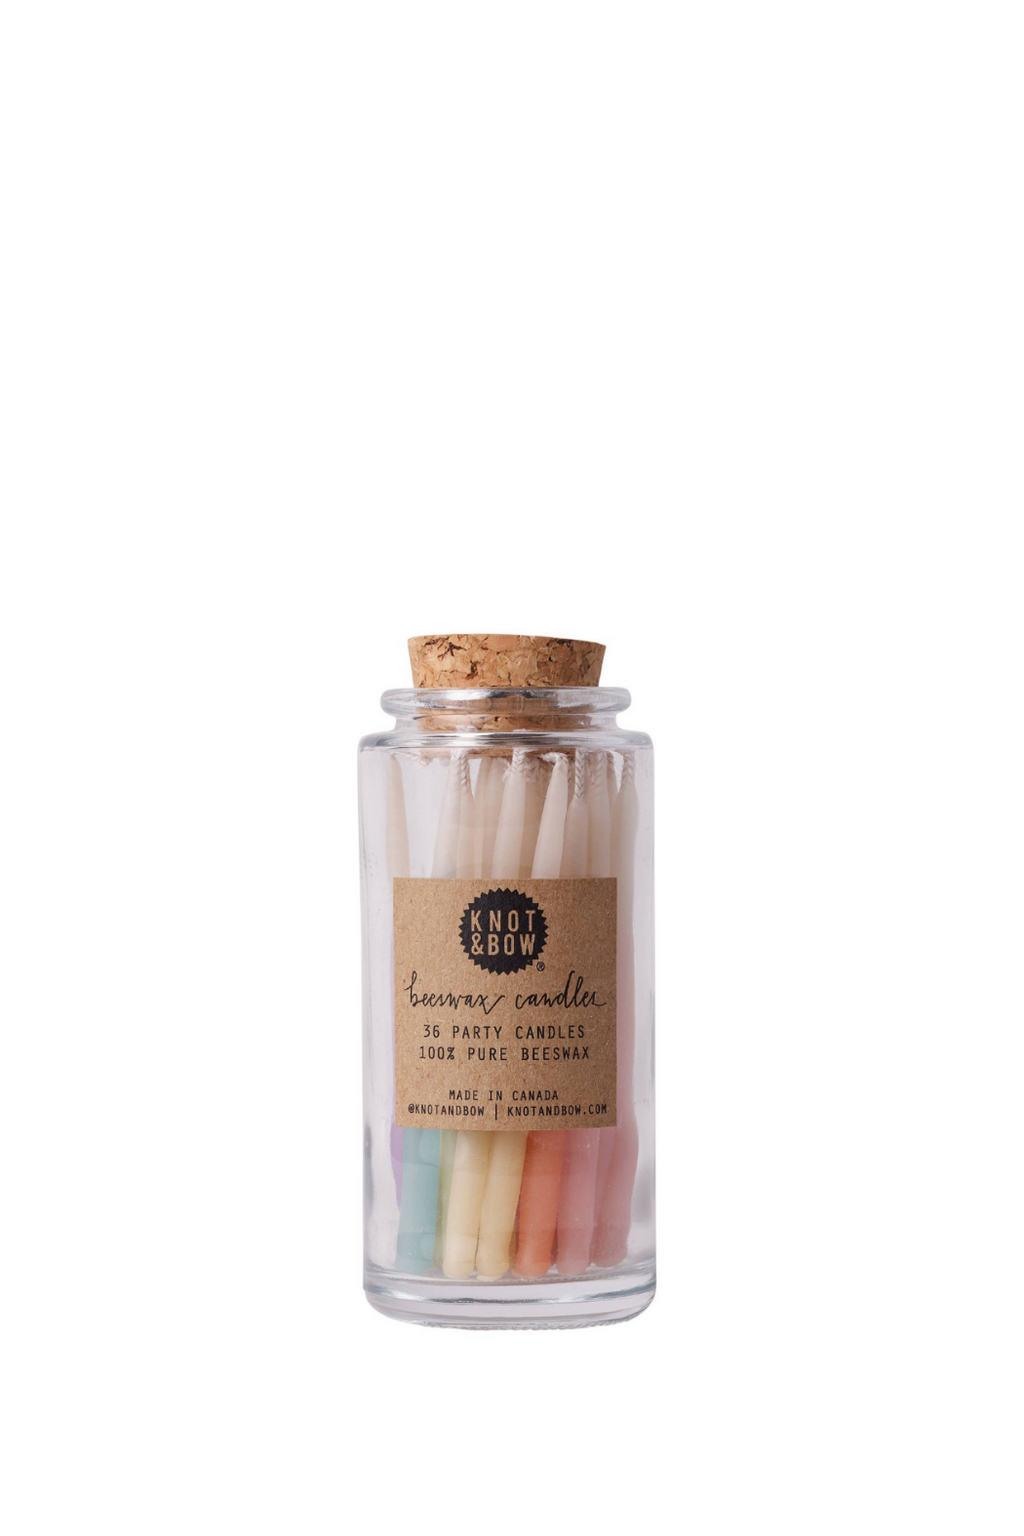 Knot & Bow Beeswax Birthday Candles in Ombre Rainbow